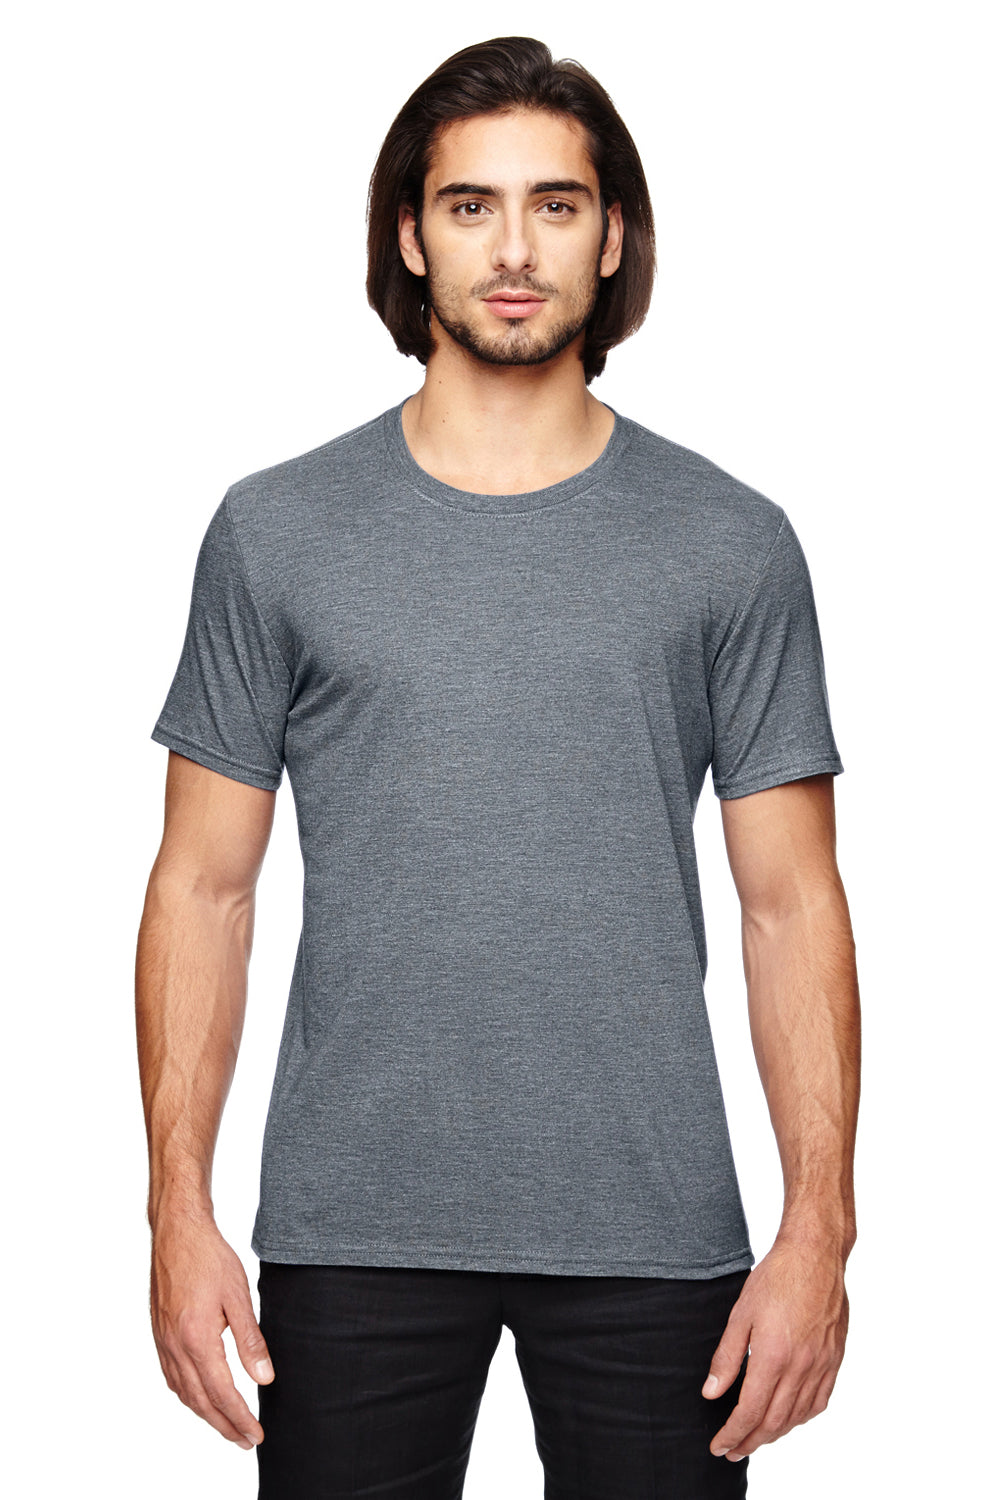 Anvil 6750 Mens Short Sleeve Crewneck T-Shirt Heather Graphite Grey Front